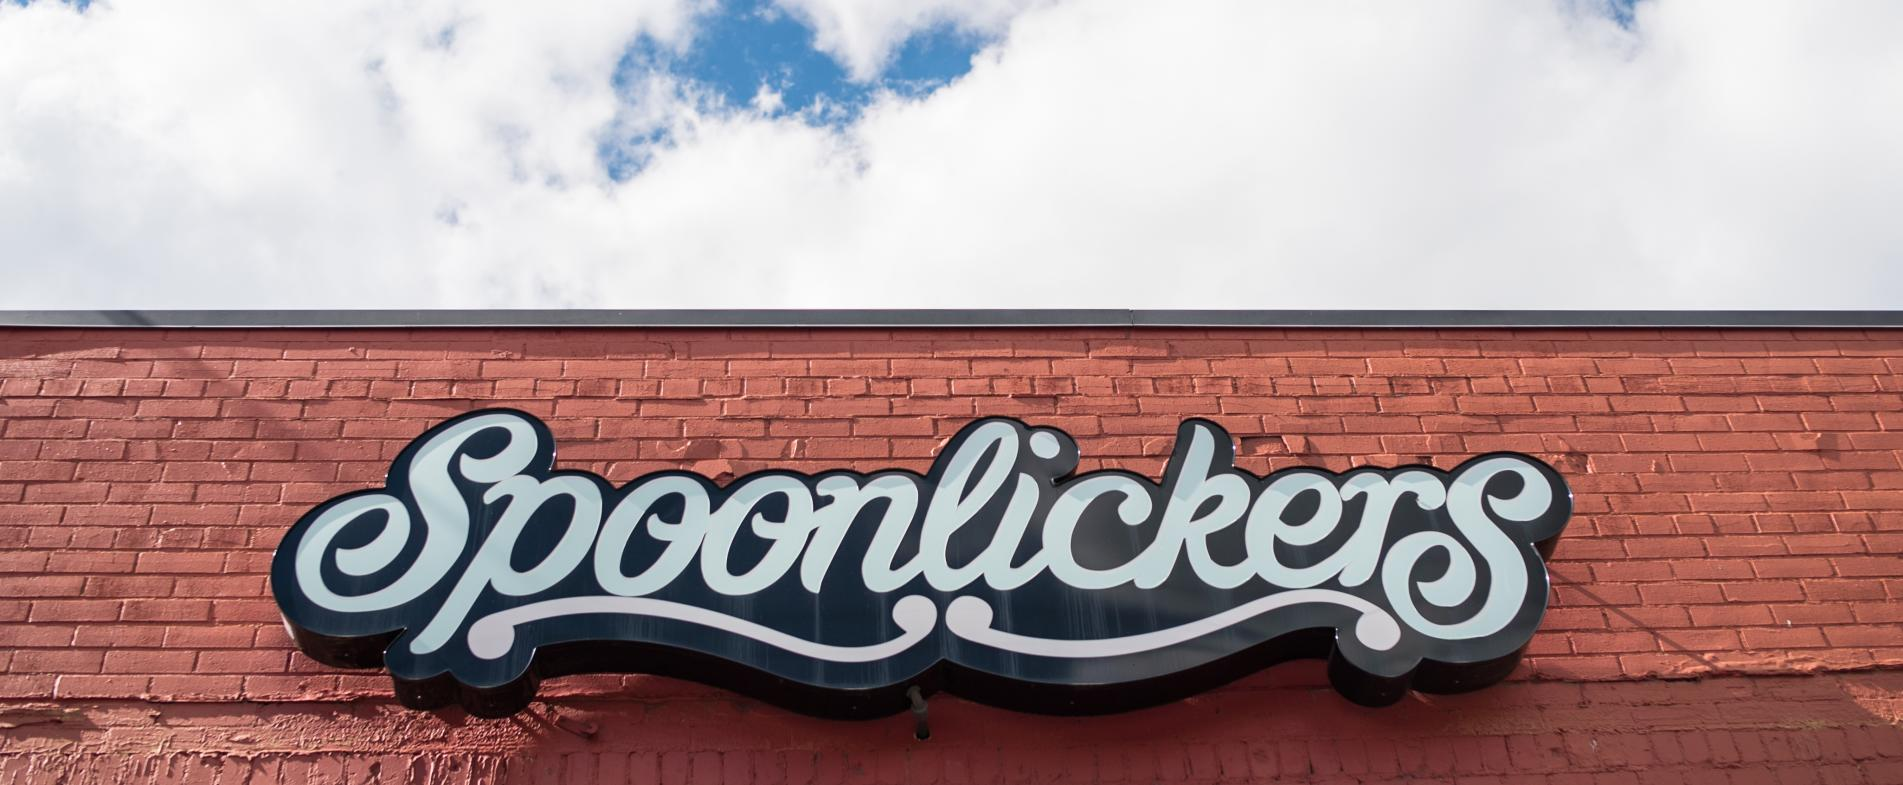 Visit one of Spoonlickers' multiple locations around Grand Rapids and surrounding communities!